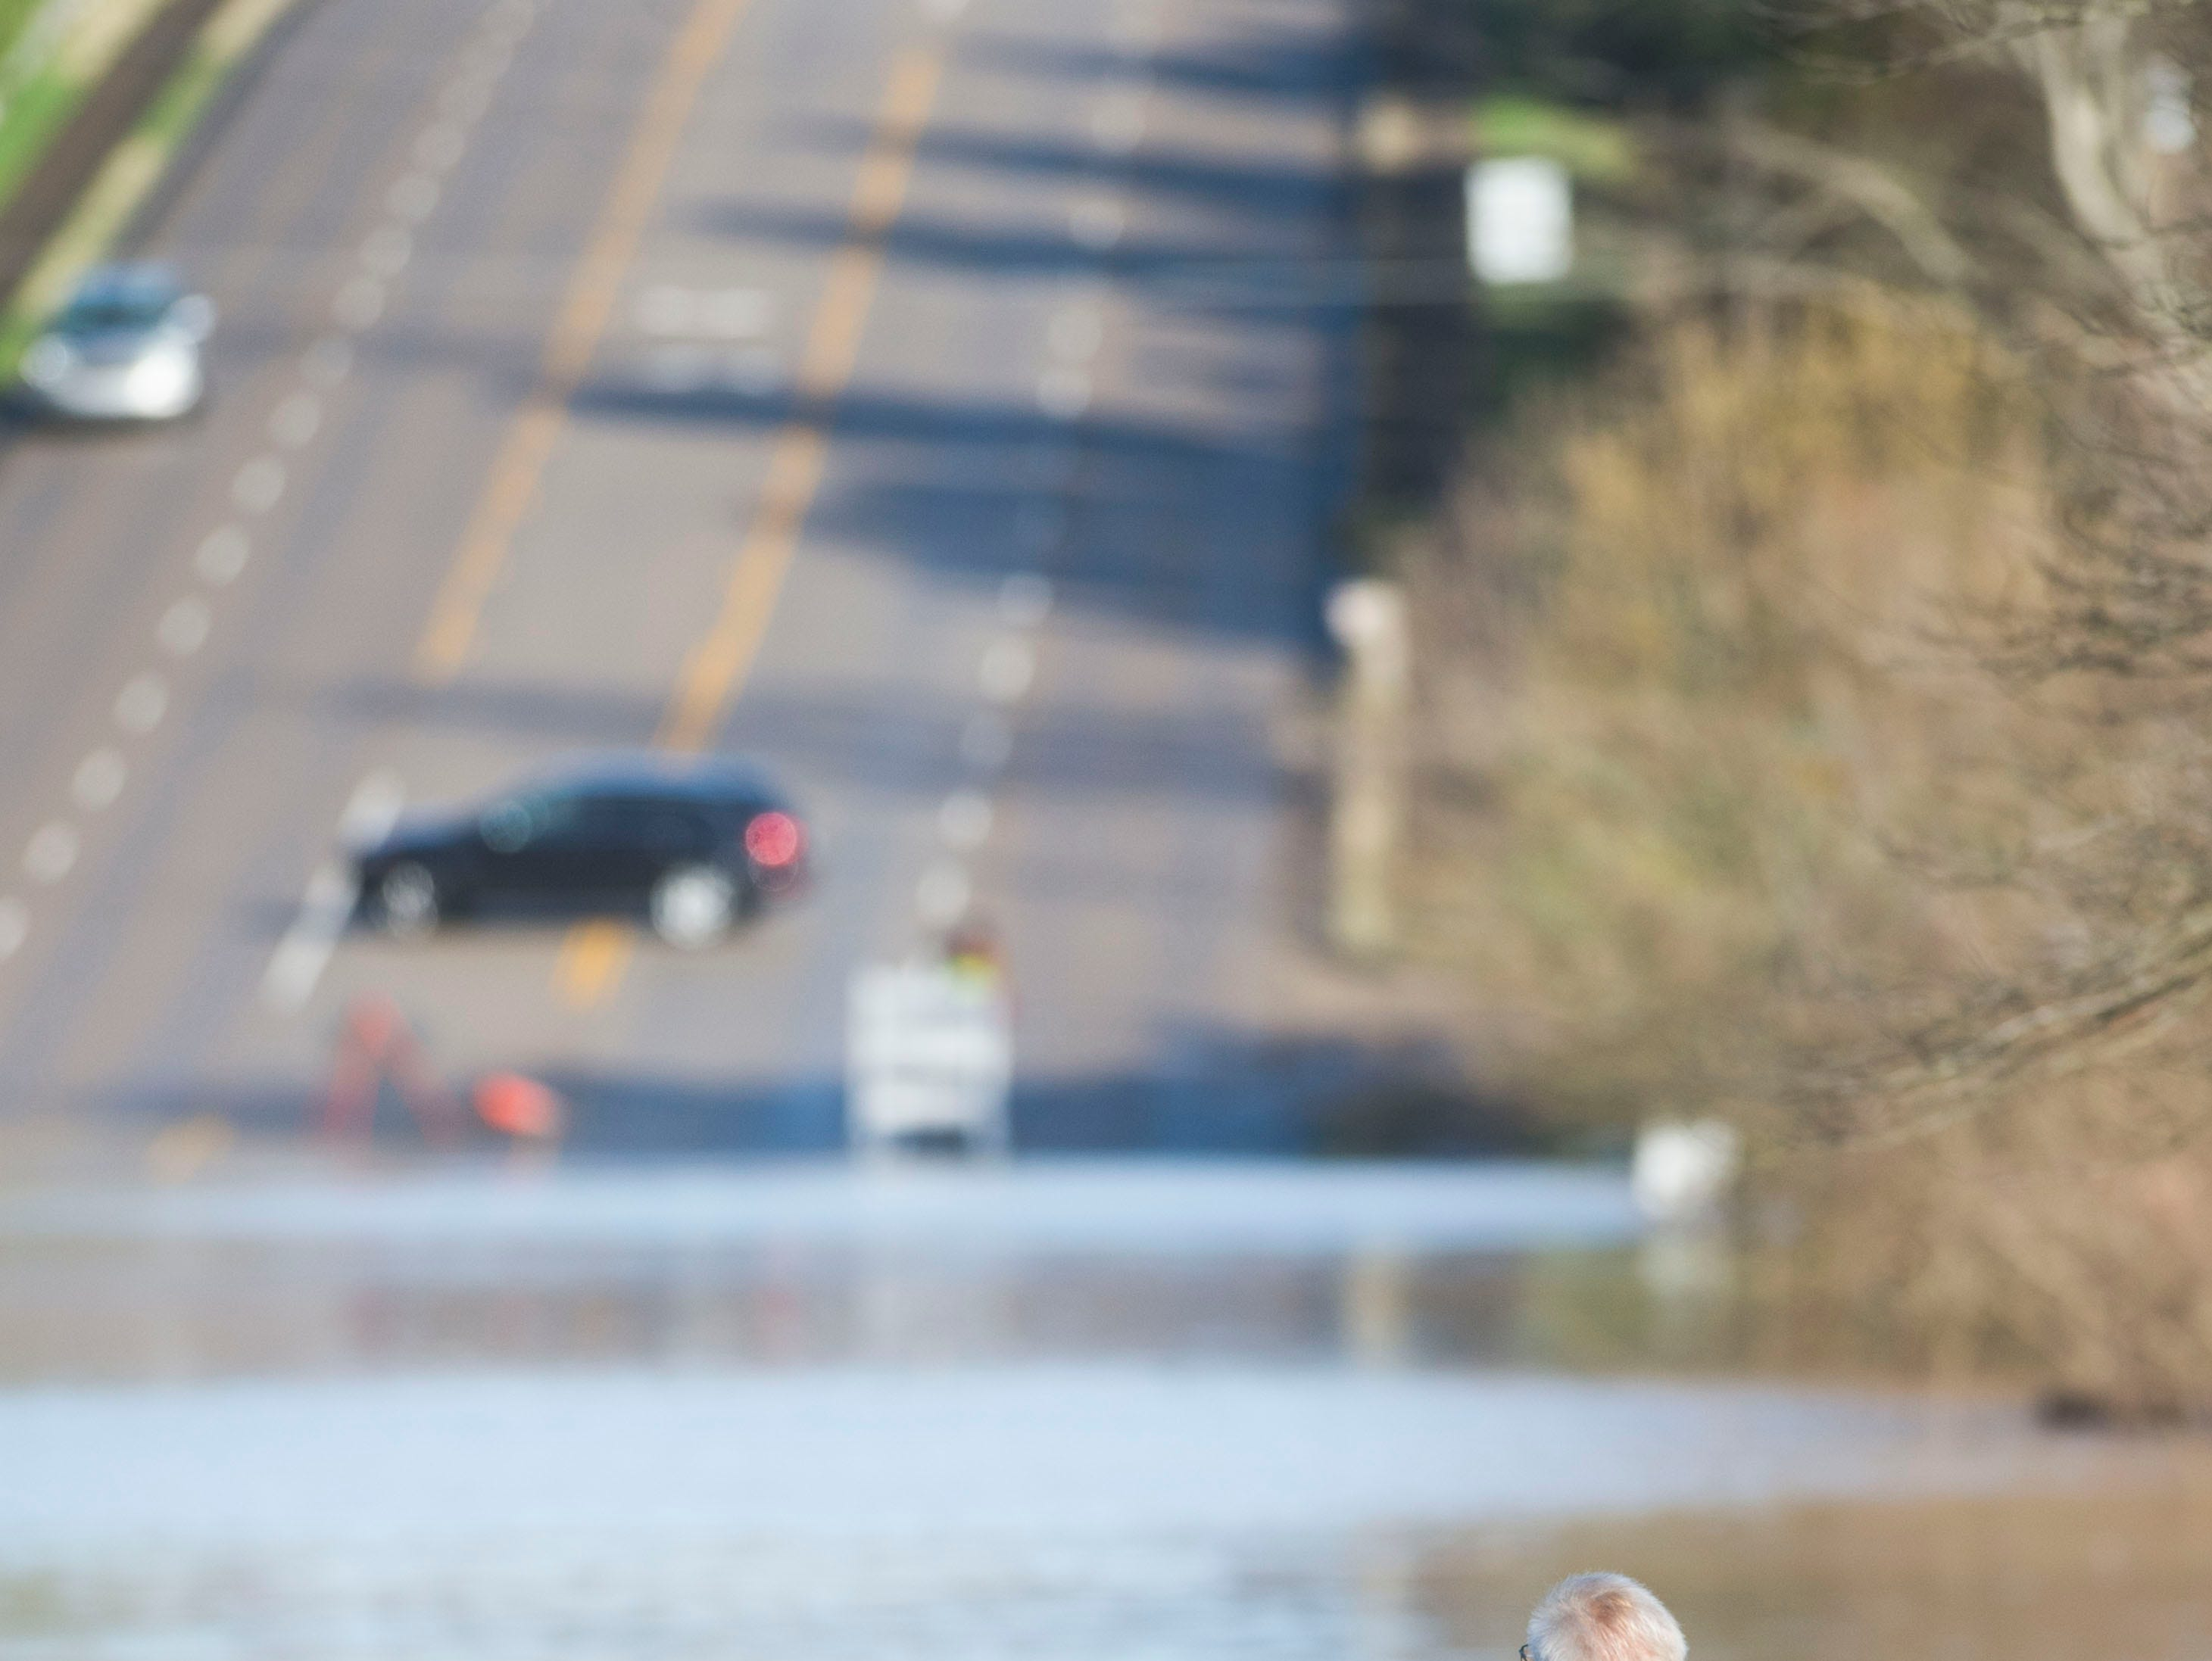 Rolf Migun, of Knoxville, observes flooding with his dog Ellie Mae, on South Peters and Ebenezer Road in West Knoxville Sunday, Feb. 24, 2019.